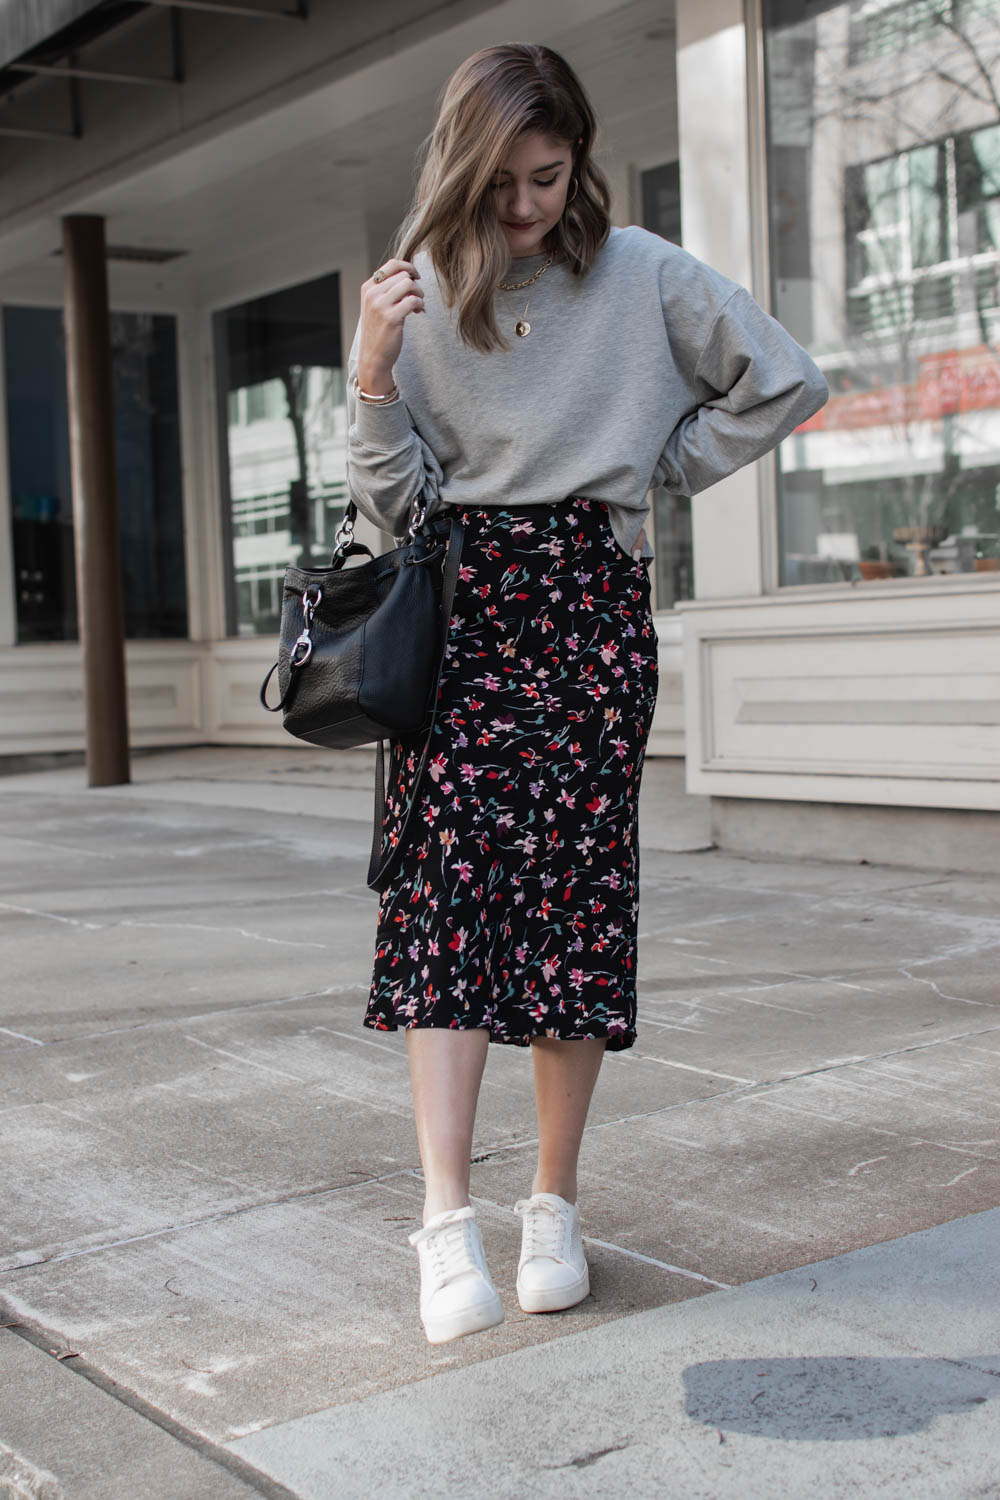 1 skirt styled to create 3 transitional spring outfits